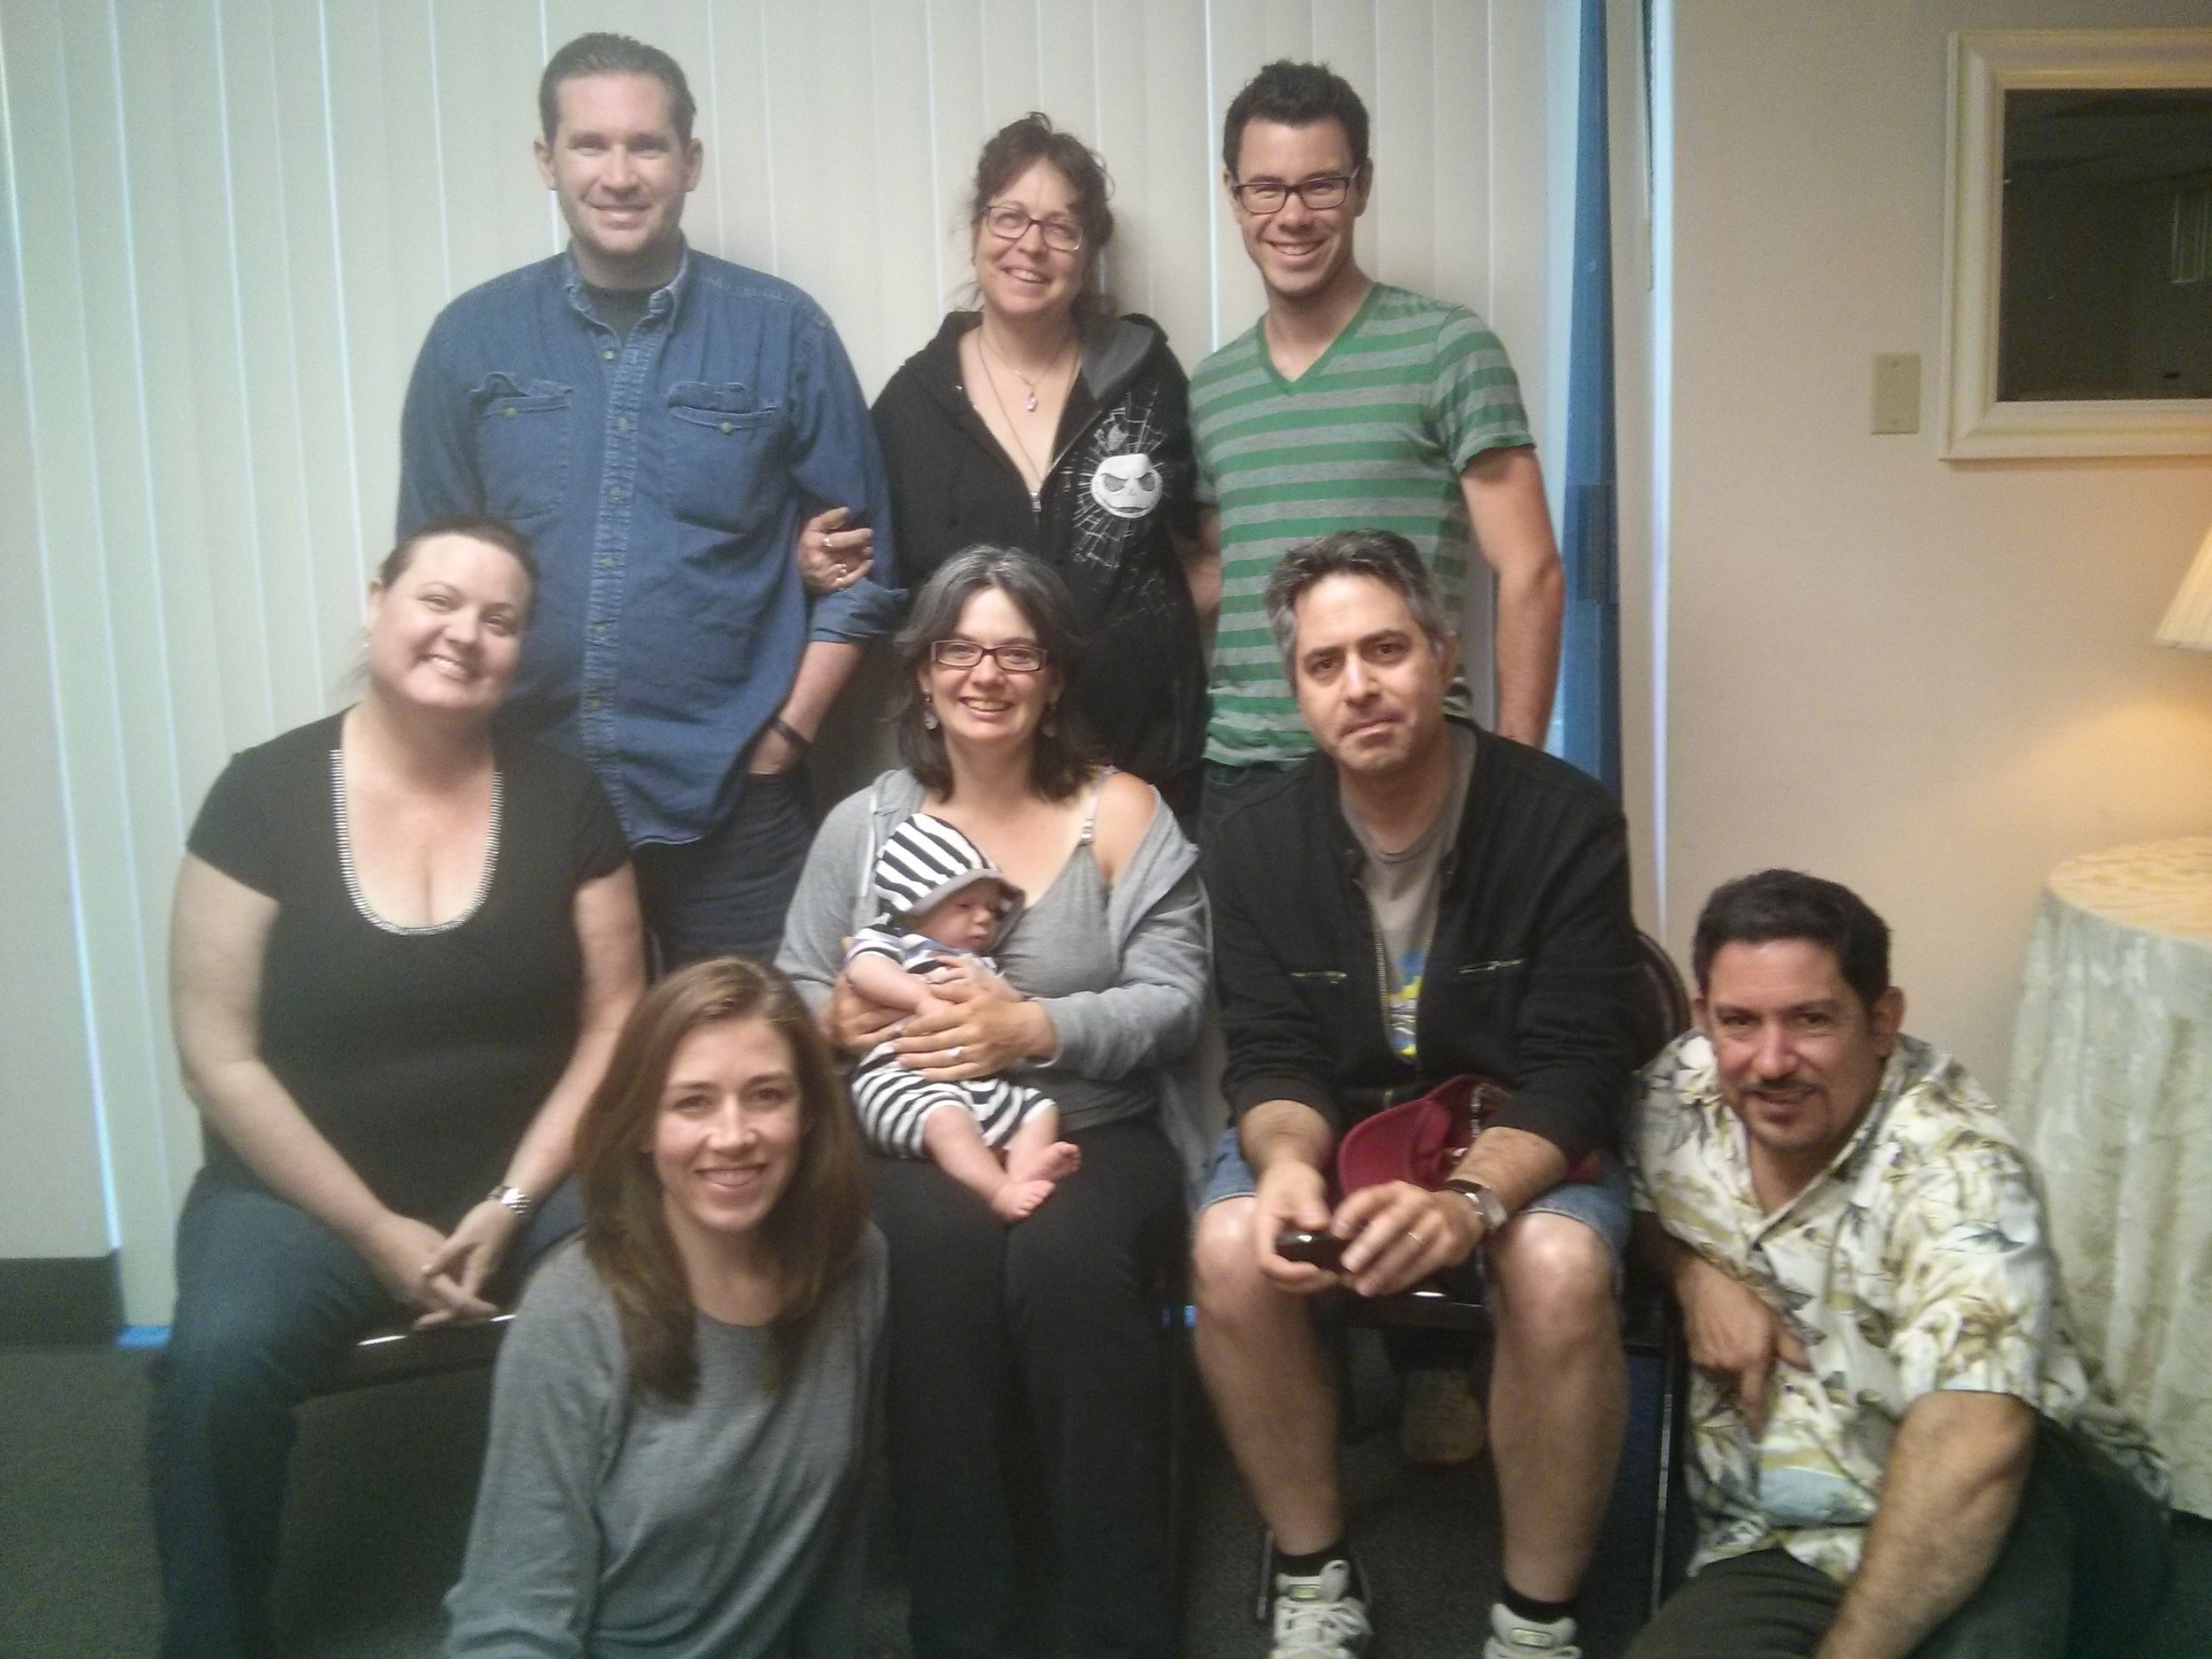 Steering Committee & Associate Producers of Directors Lab West 2014, at our last meeting before the 15th Anniversary Lab. Douglas Clayton, Janet Miller, Doug Oliphant, Che'Rae Adams, me and Lil' Pirate Dude, Richard Tatum, Diana Wyenn and Ernest Figueroa.